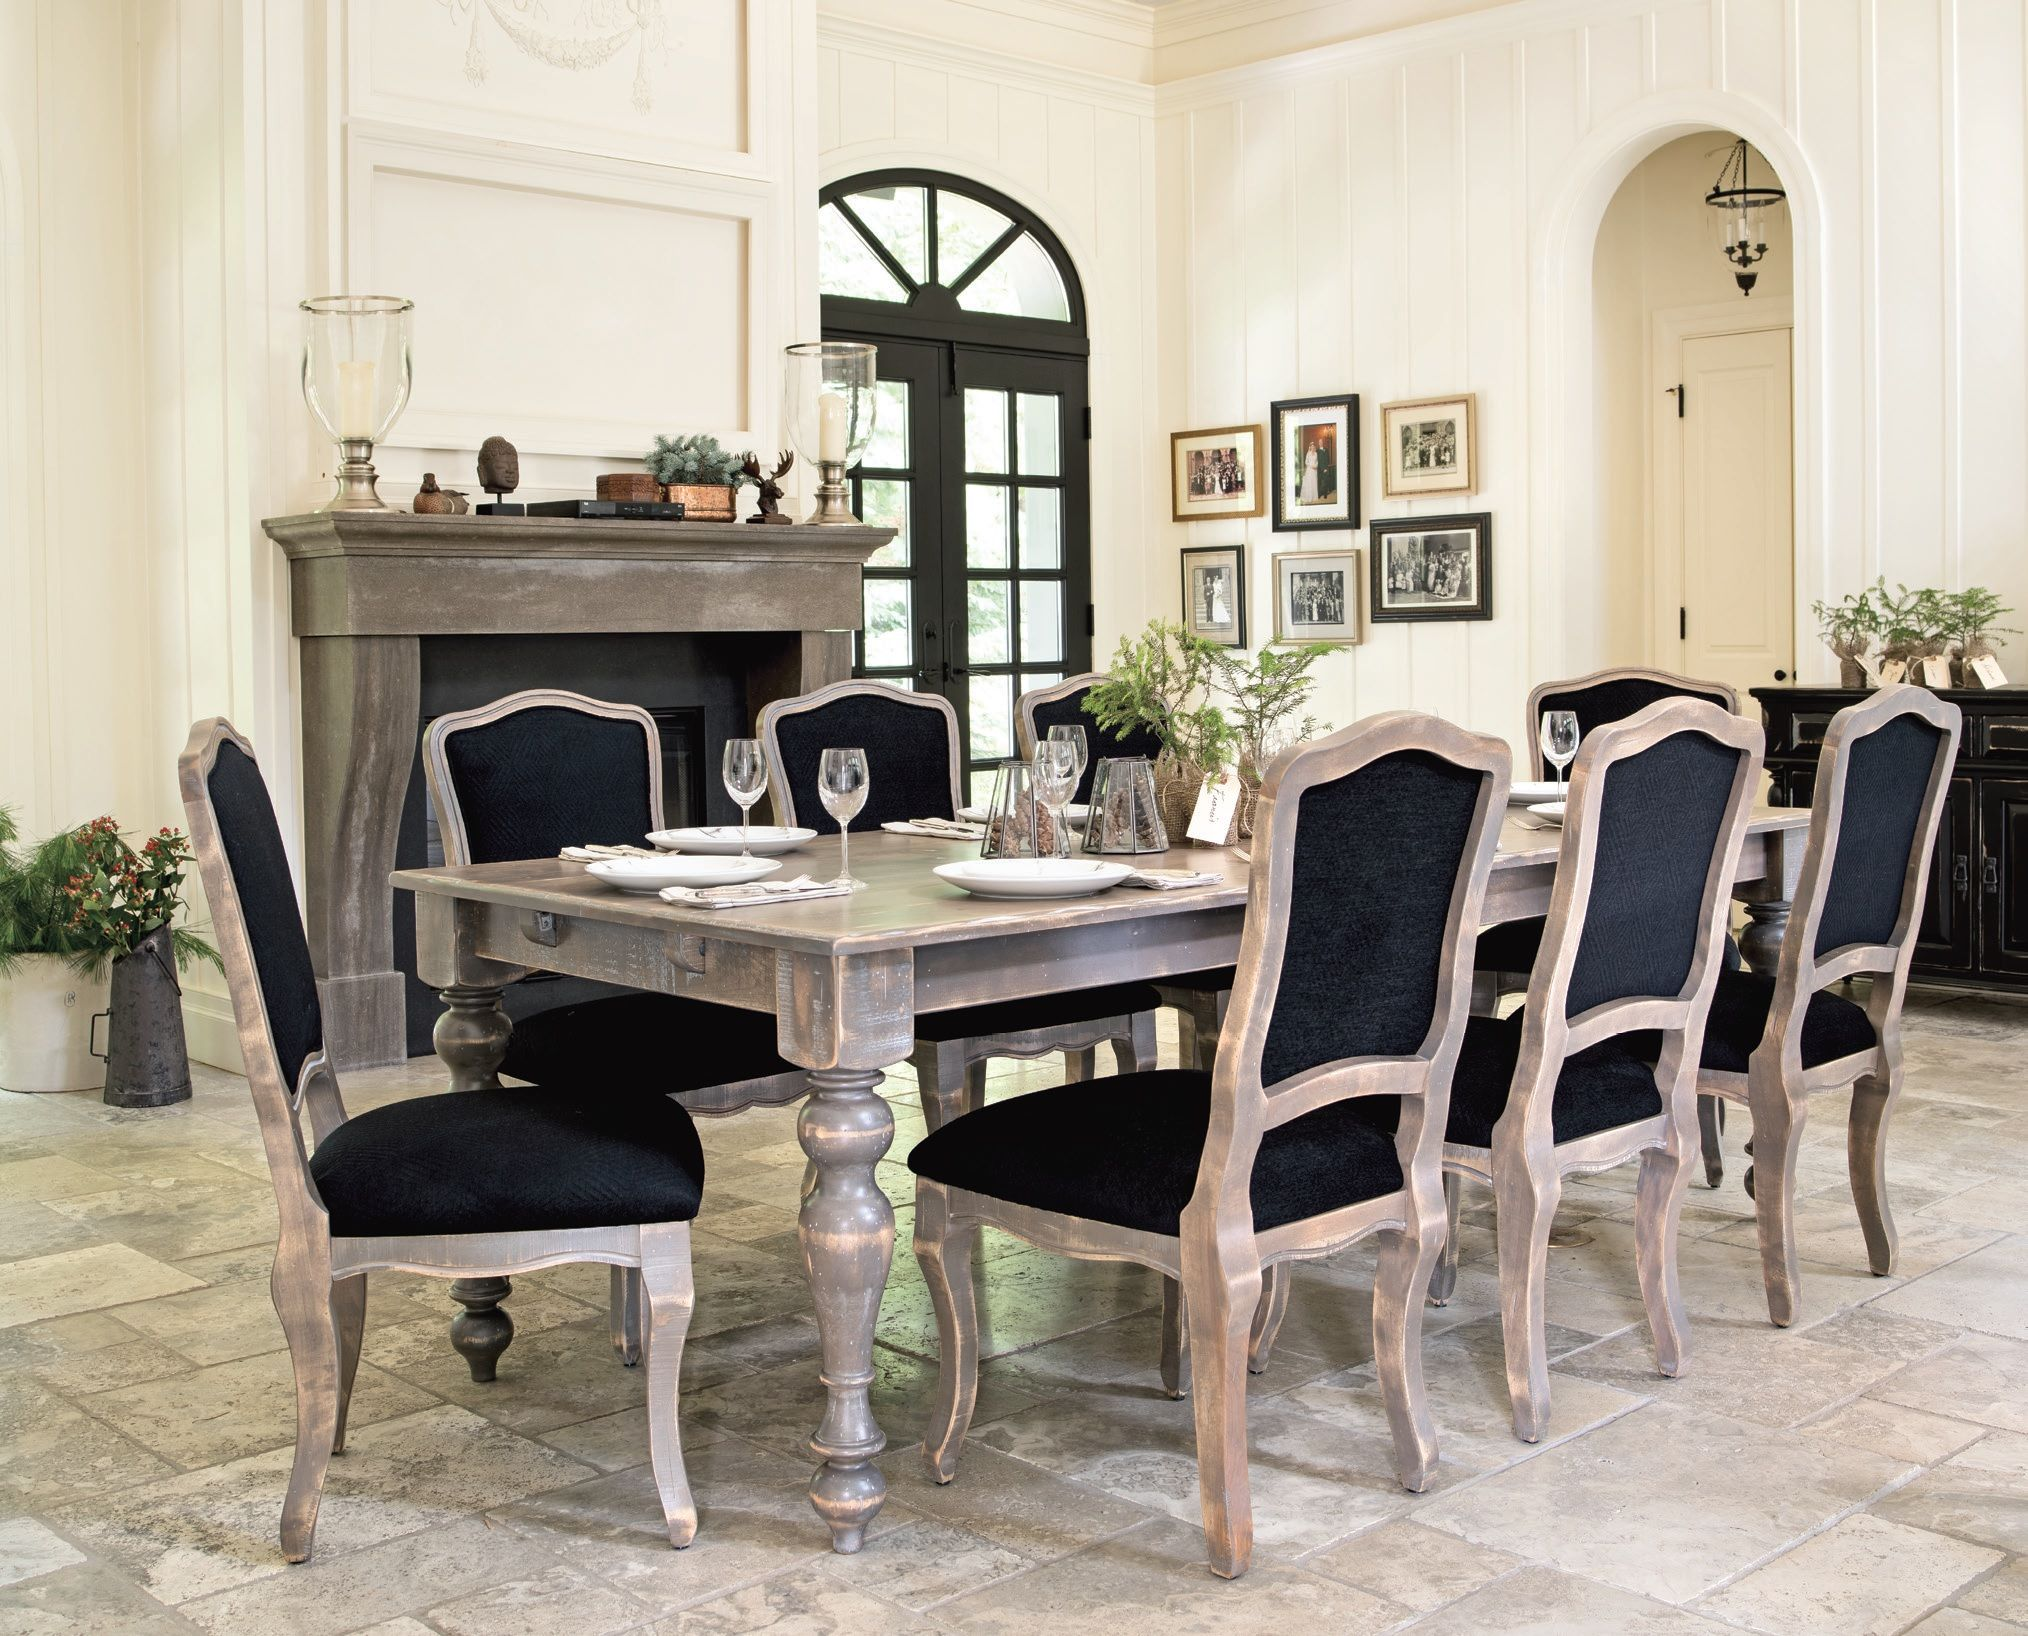 From The Key Furniture Pieces To Final Decor Touches How To Nail